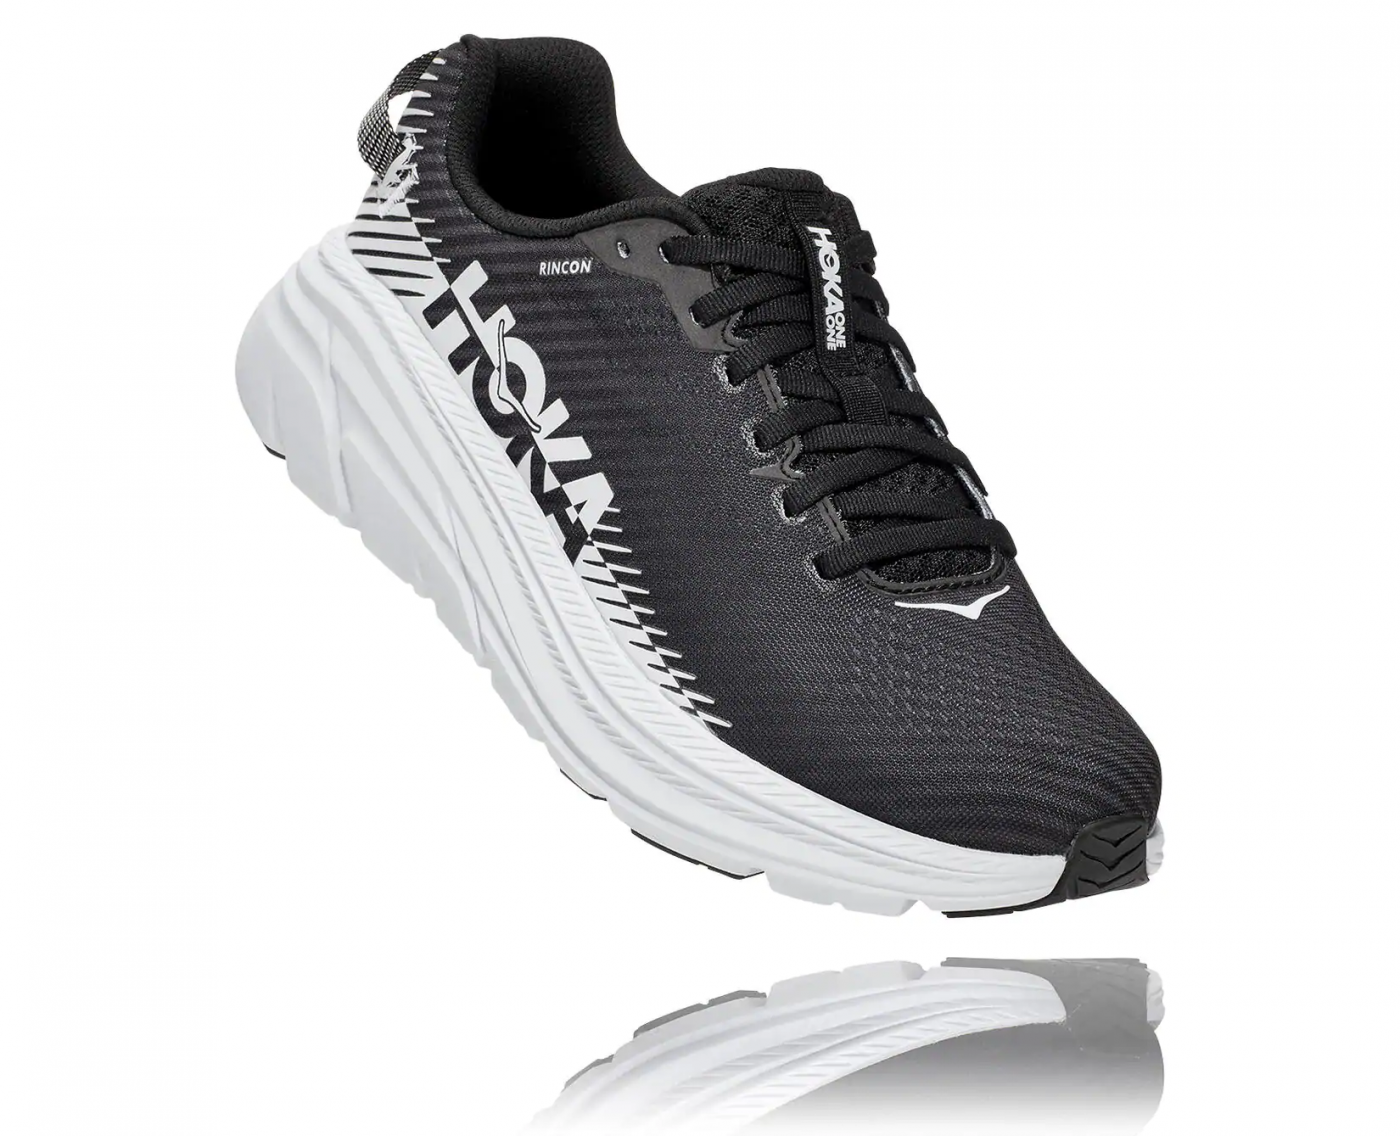 RINCON-2-Hoka-One-One-lunar-black-white-w